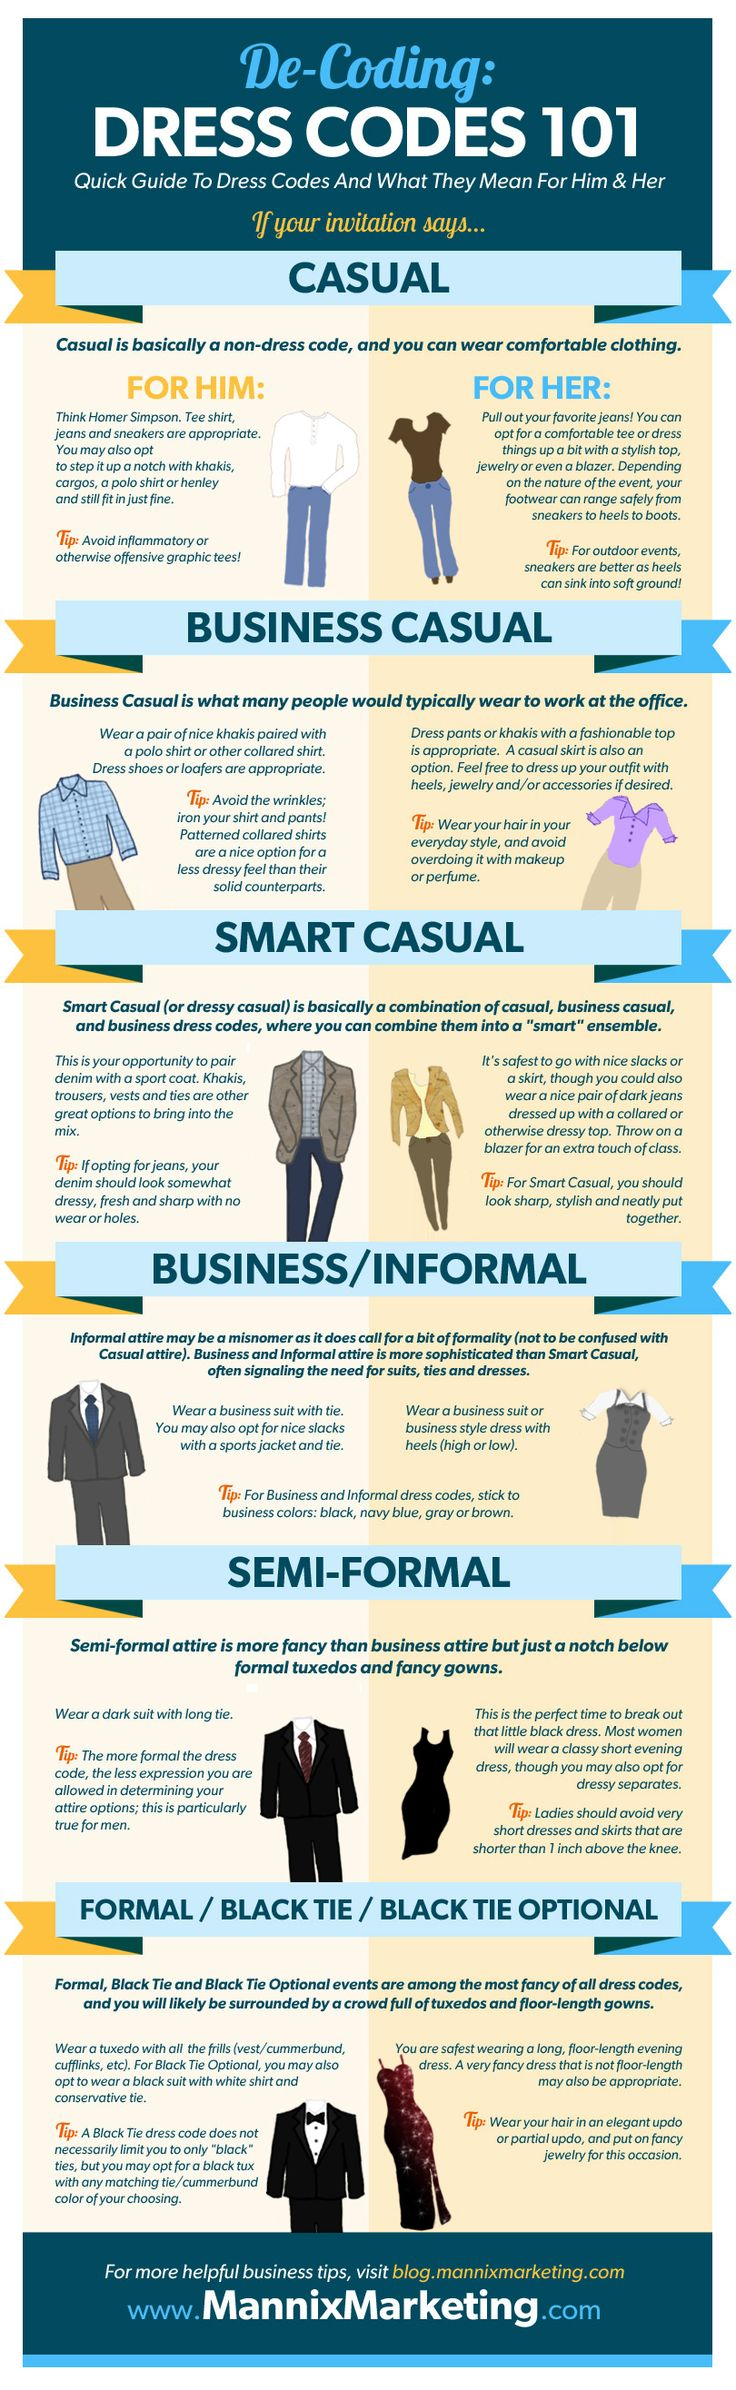 What's the Difference Between Business Casual and Smart Casual? A Handy Guide on How to Dress.